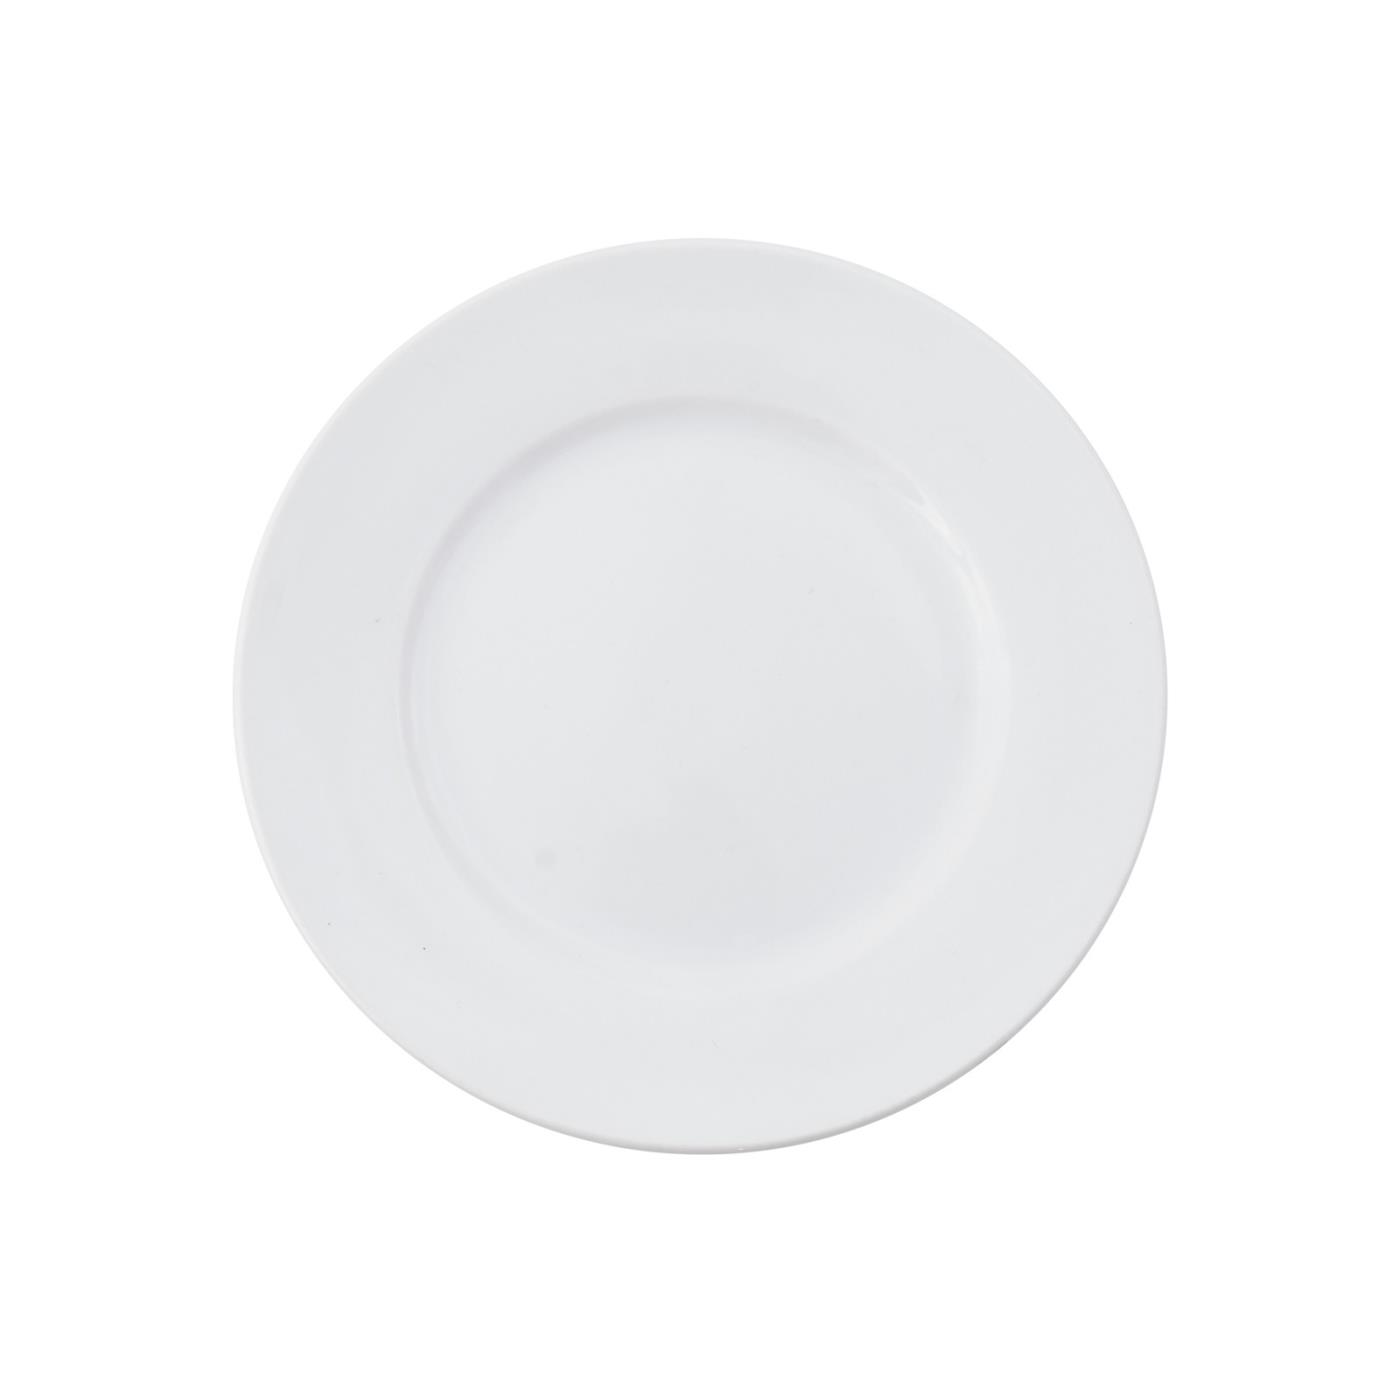 White Rim Collection -  B&B Plate 6.25""